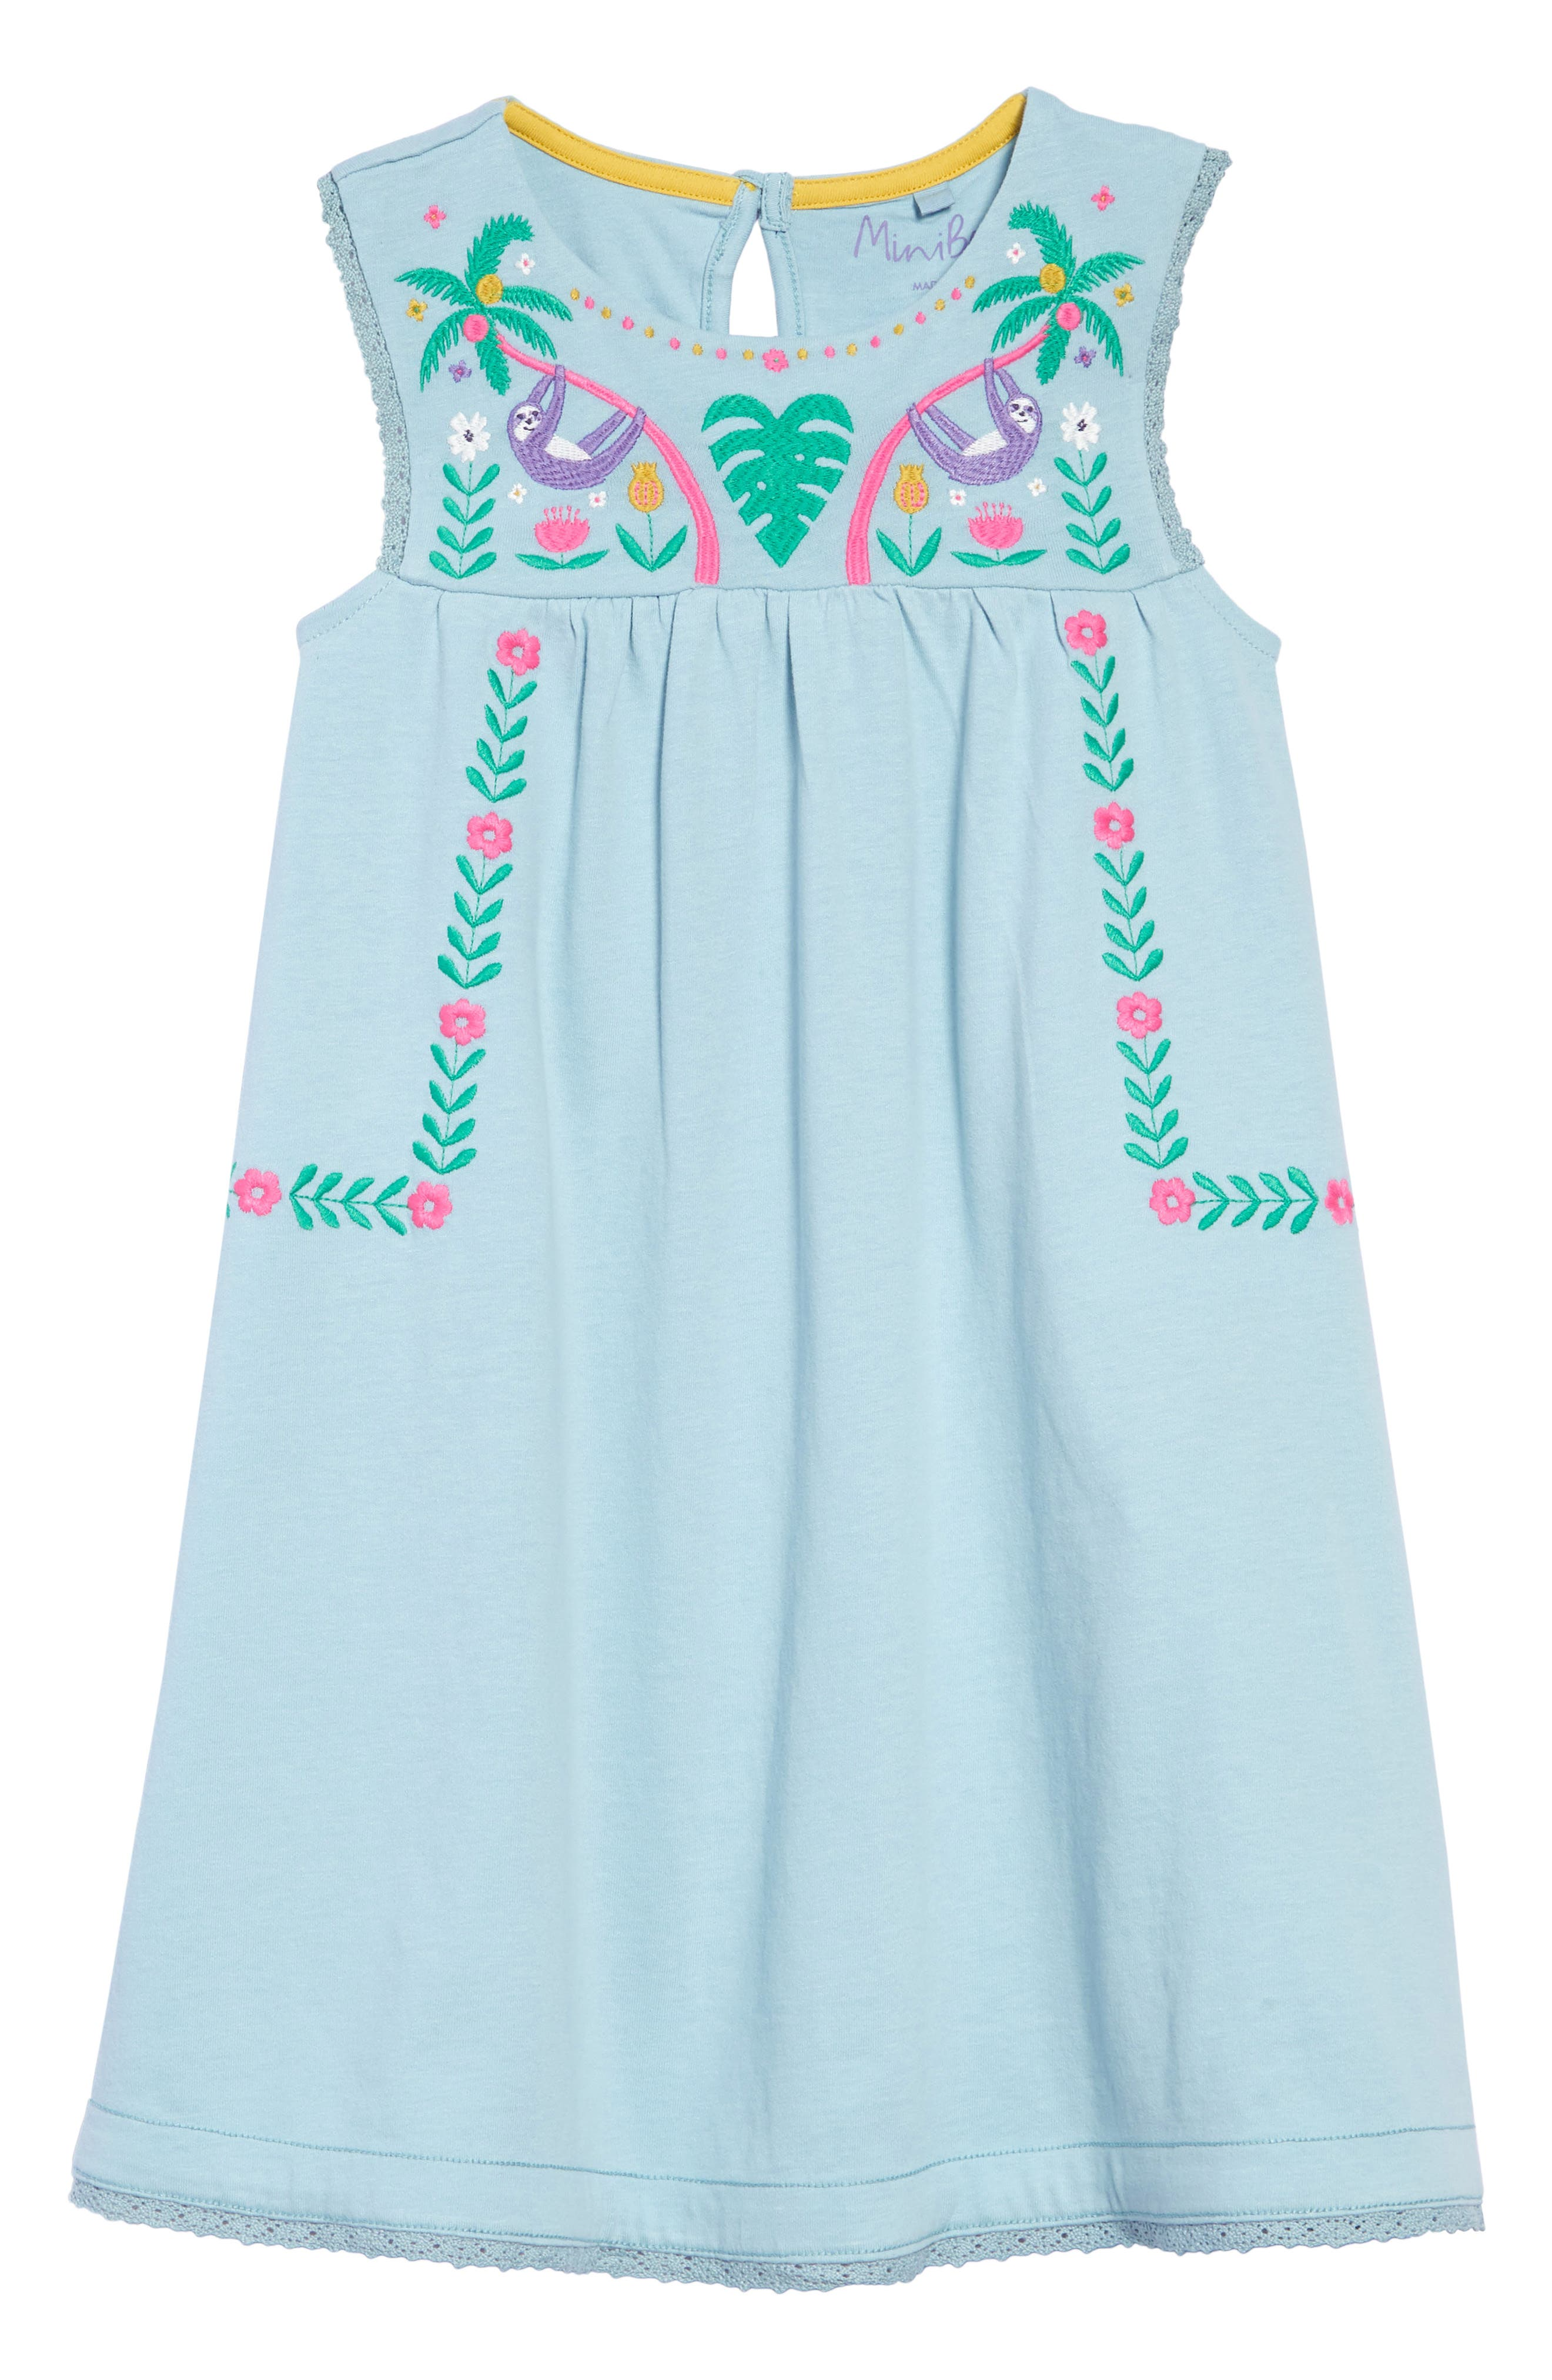 2c0aa6c3ddf8 Girl's Mini Boden Embroidered Jersey Dress,6Y - Blue